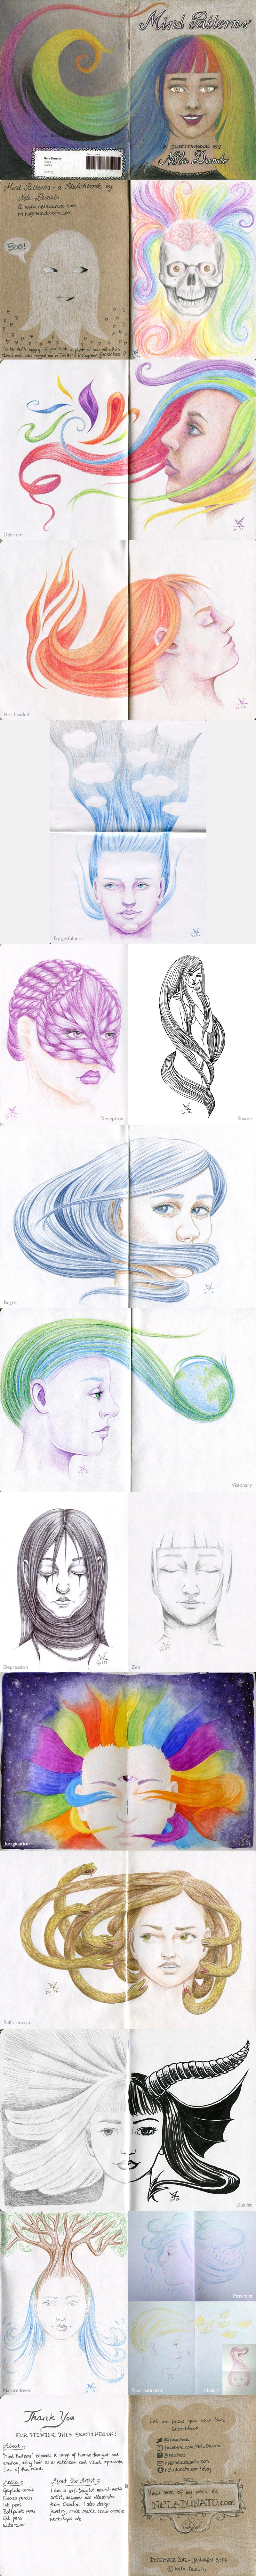 Mind Patterns - The Sketchbook Project 2013 by Nela Dunato